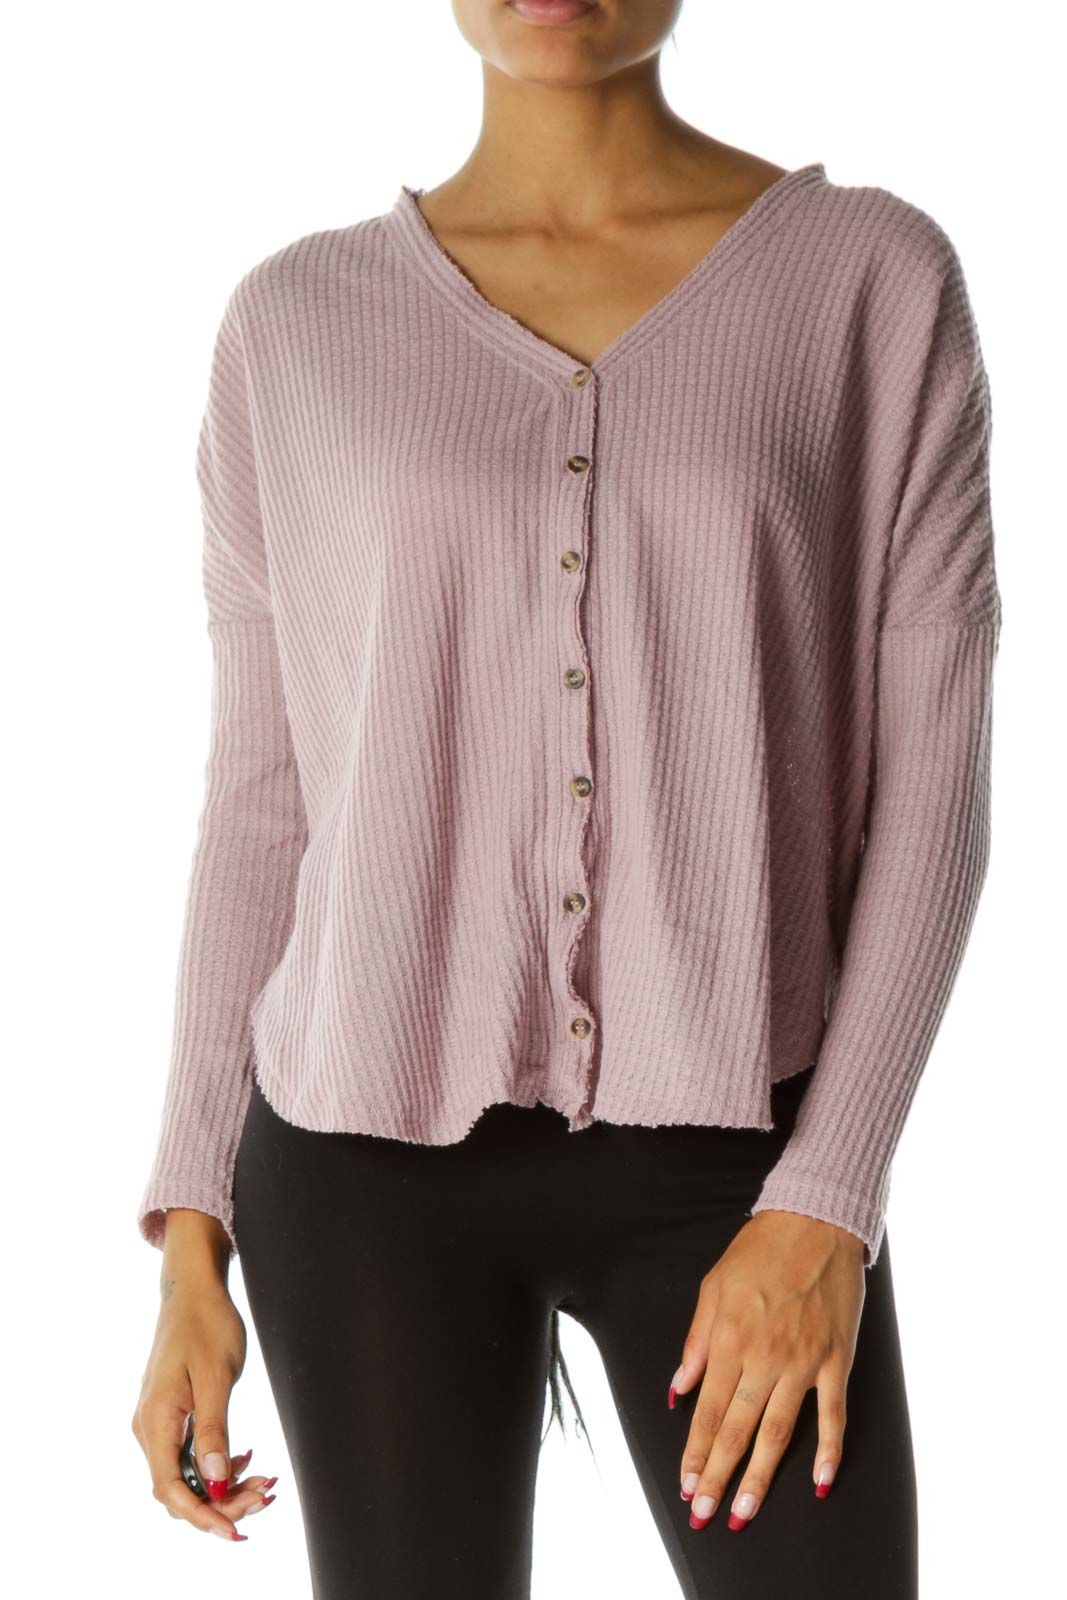 Light Pink Textured Knit Buttoned Long Sleeve Top Front